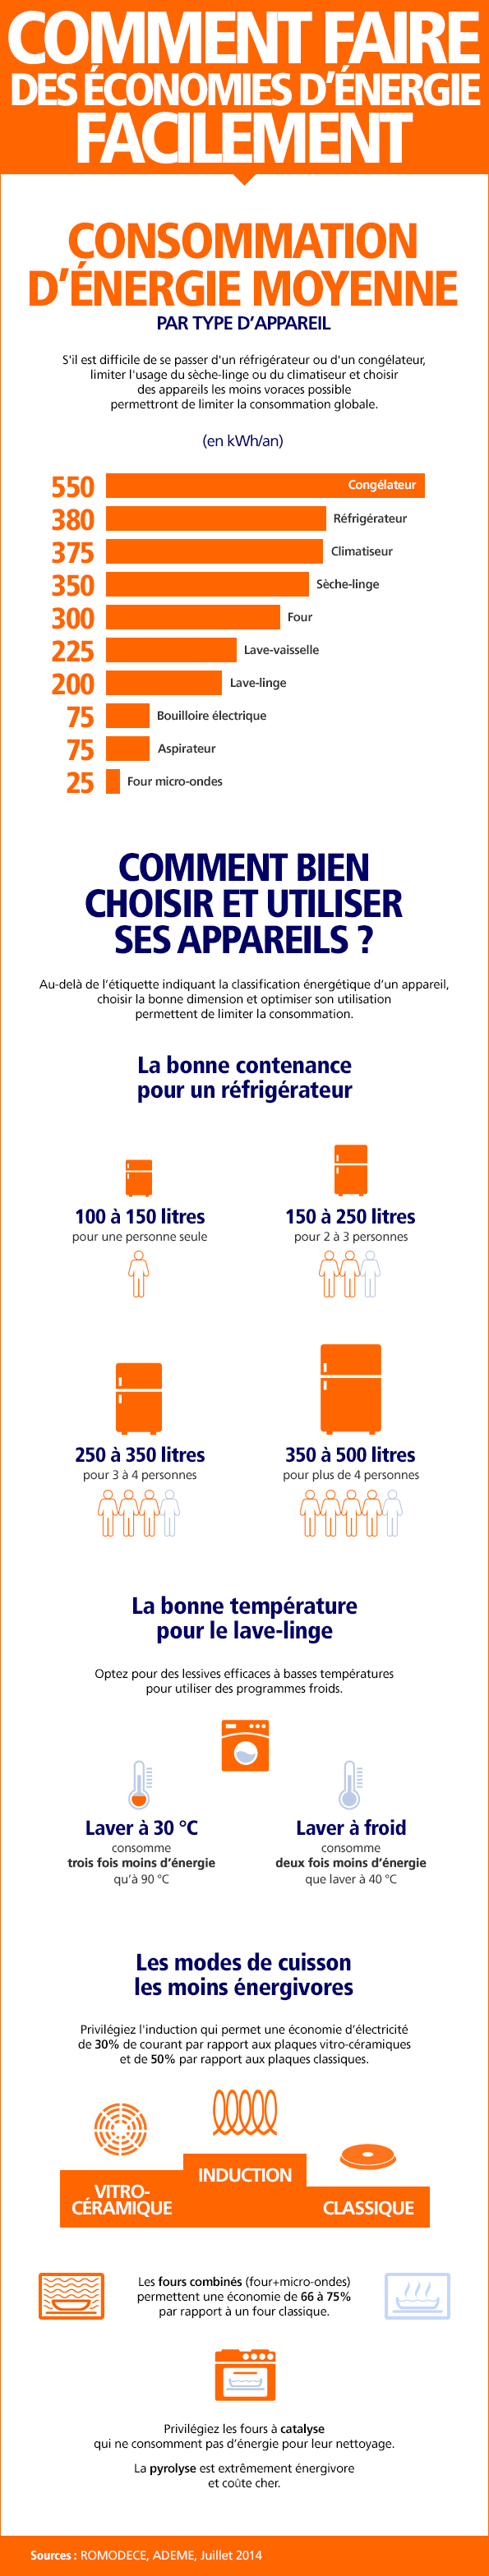 infographie_consommation_energie_2801.jpg